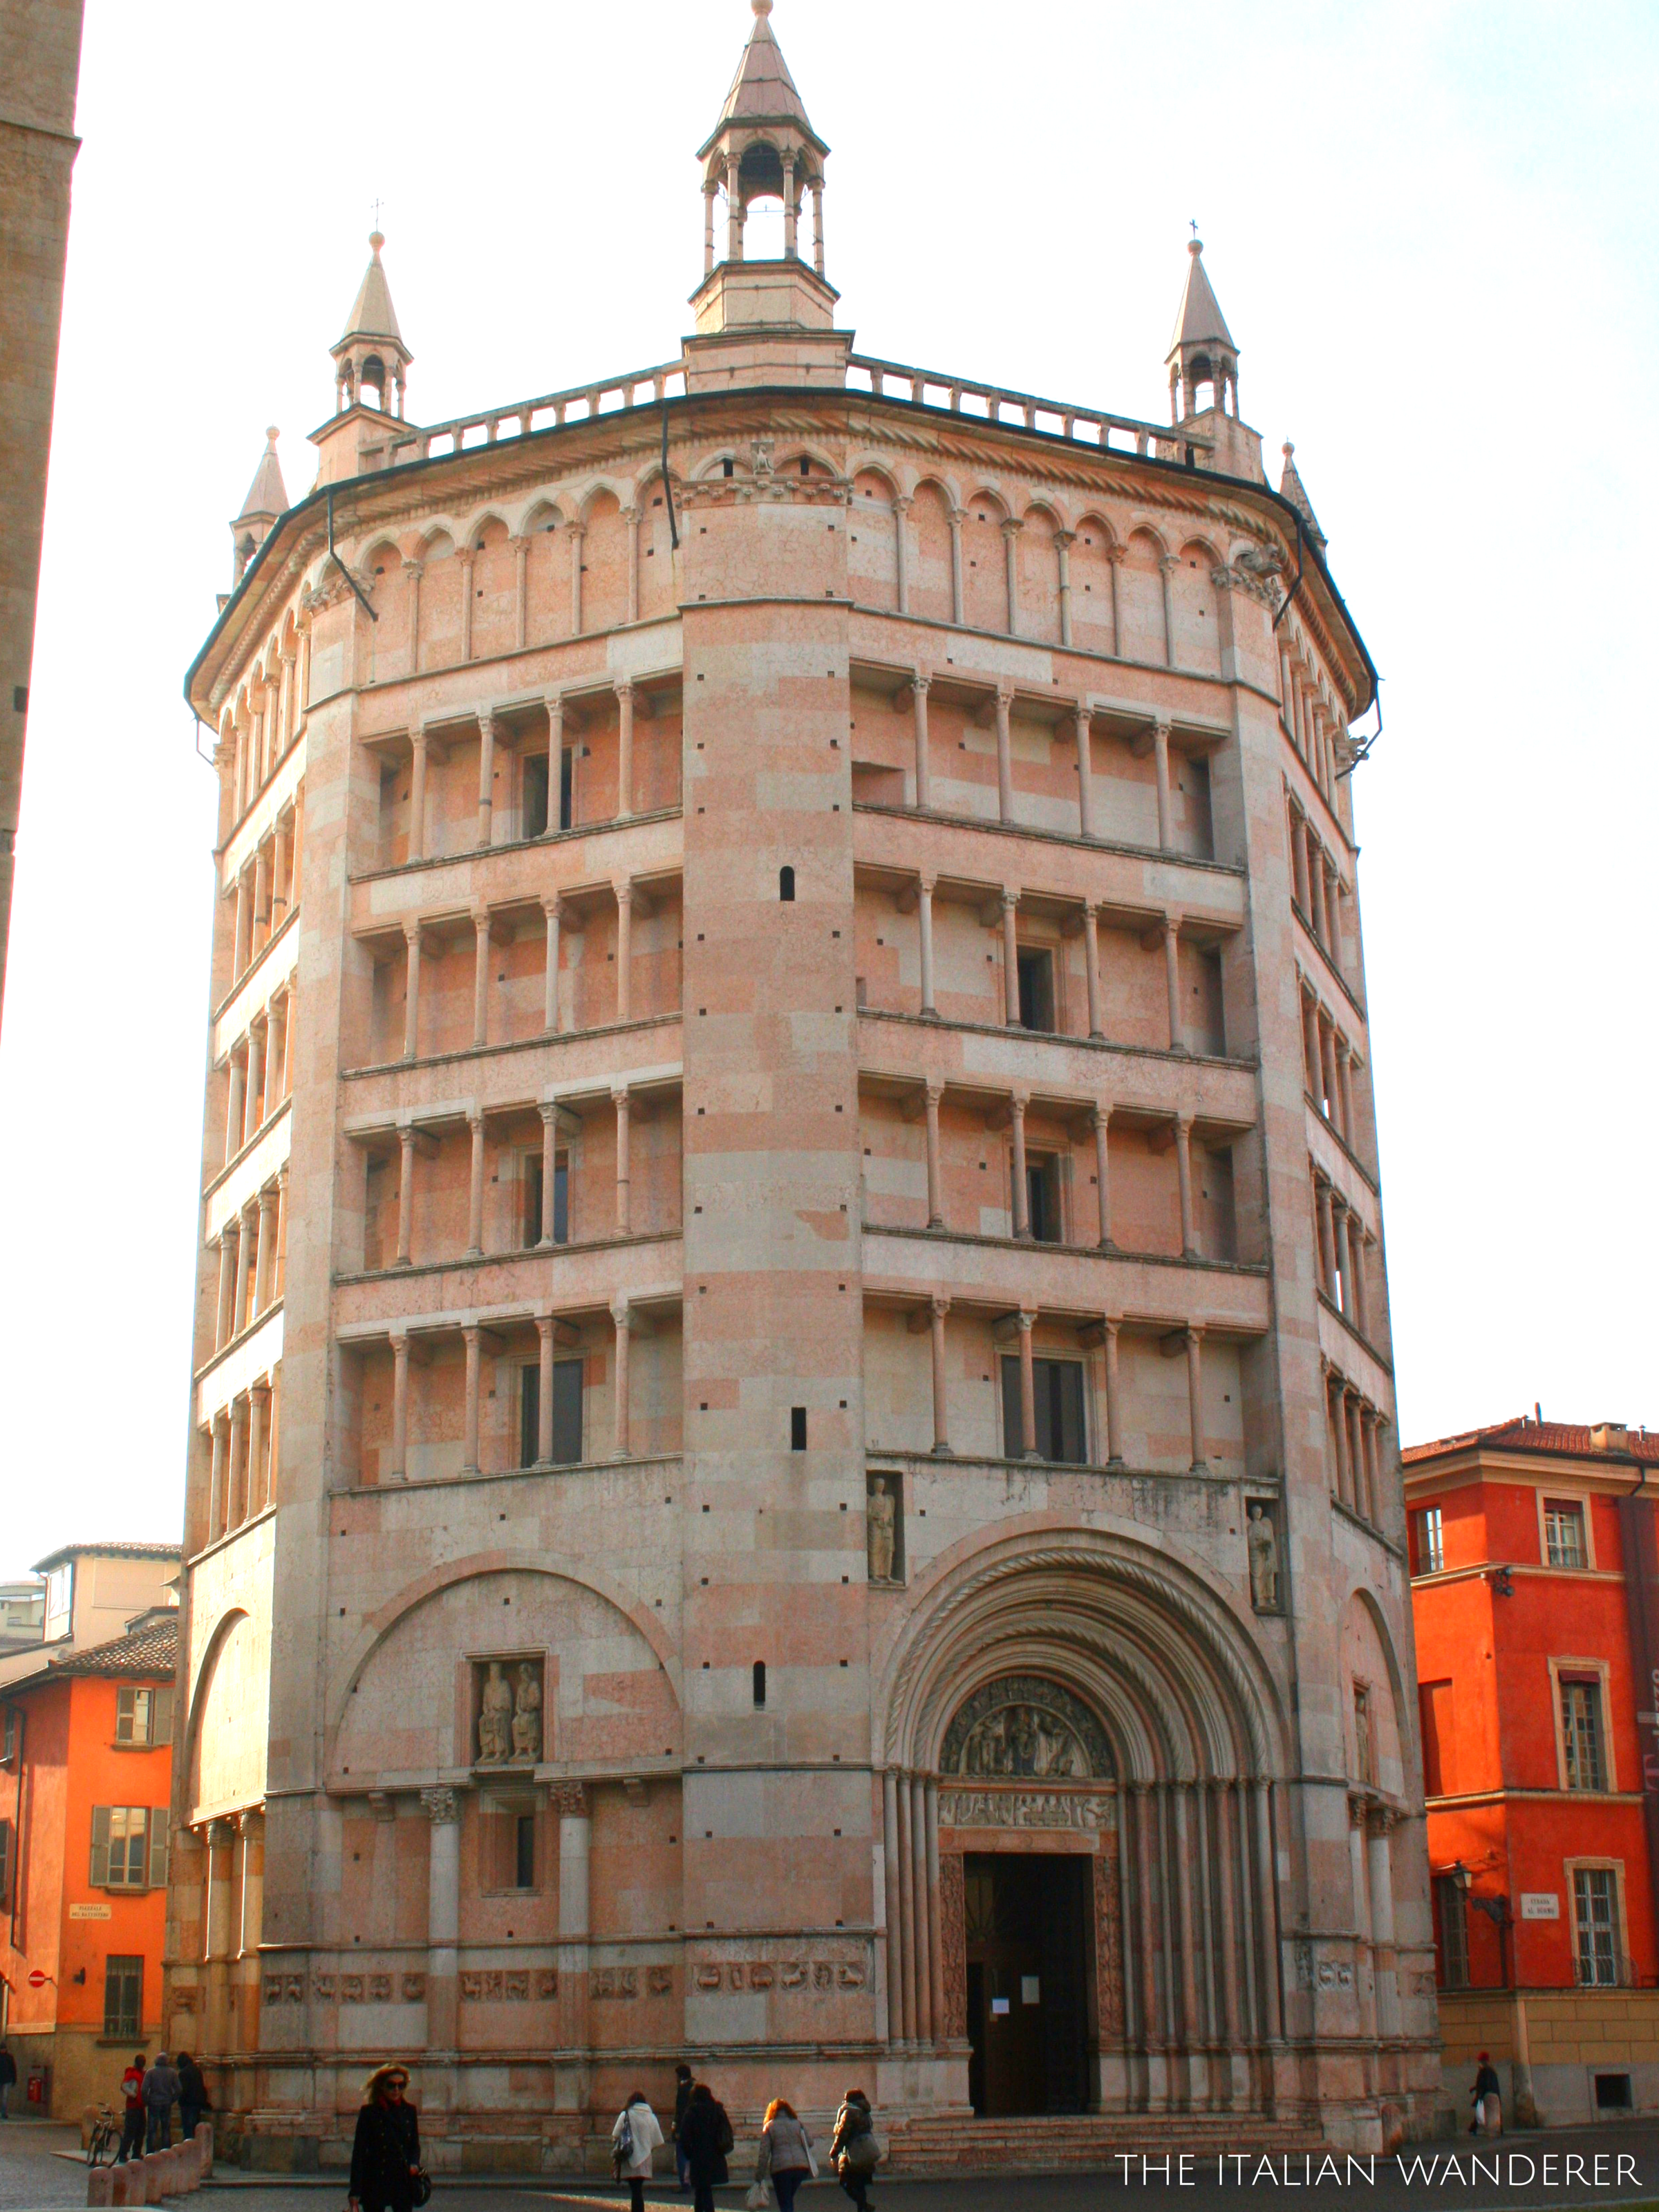 The Baptistery of Parma